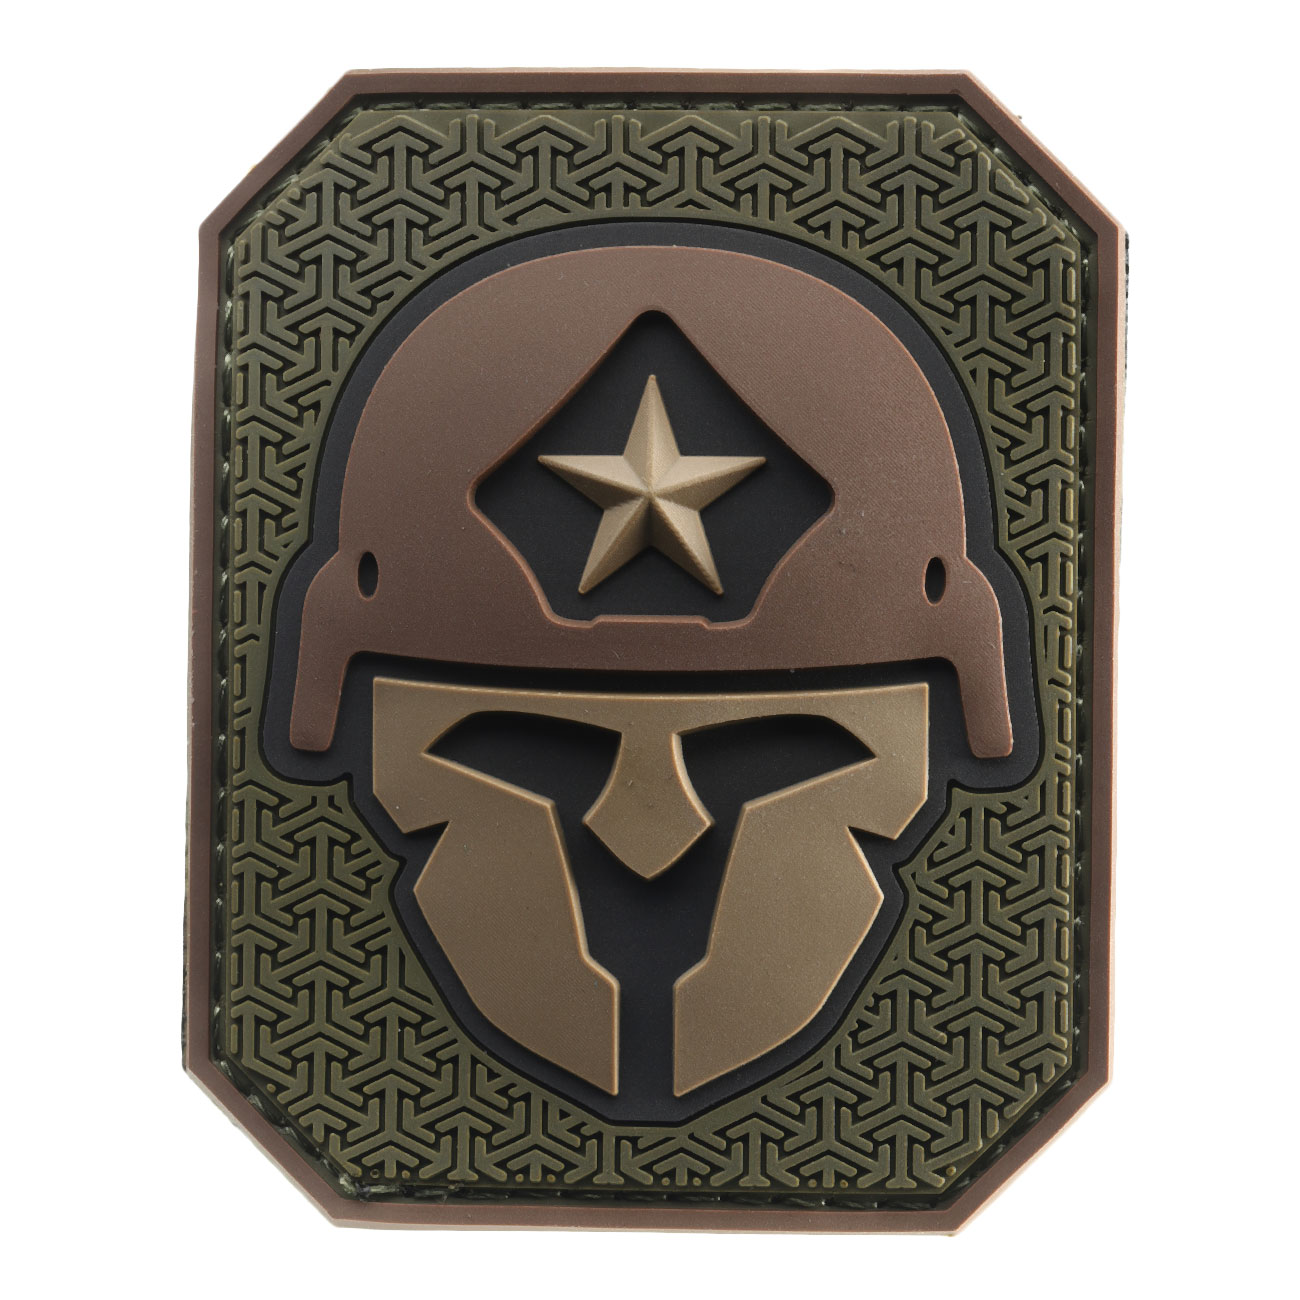 Mil-Spec Monkey 3D Rubber Patch Modern Spartan forest 0